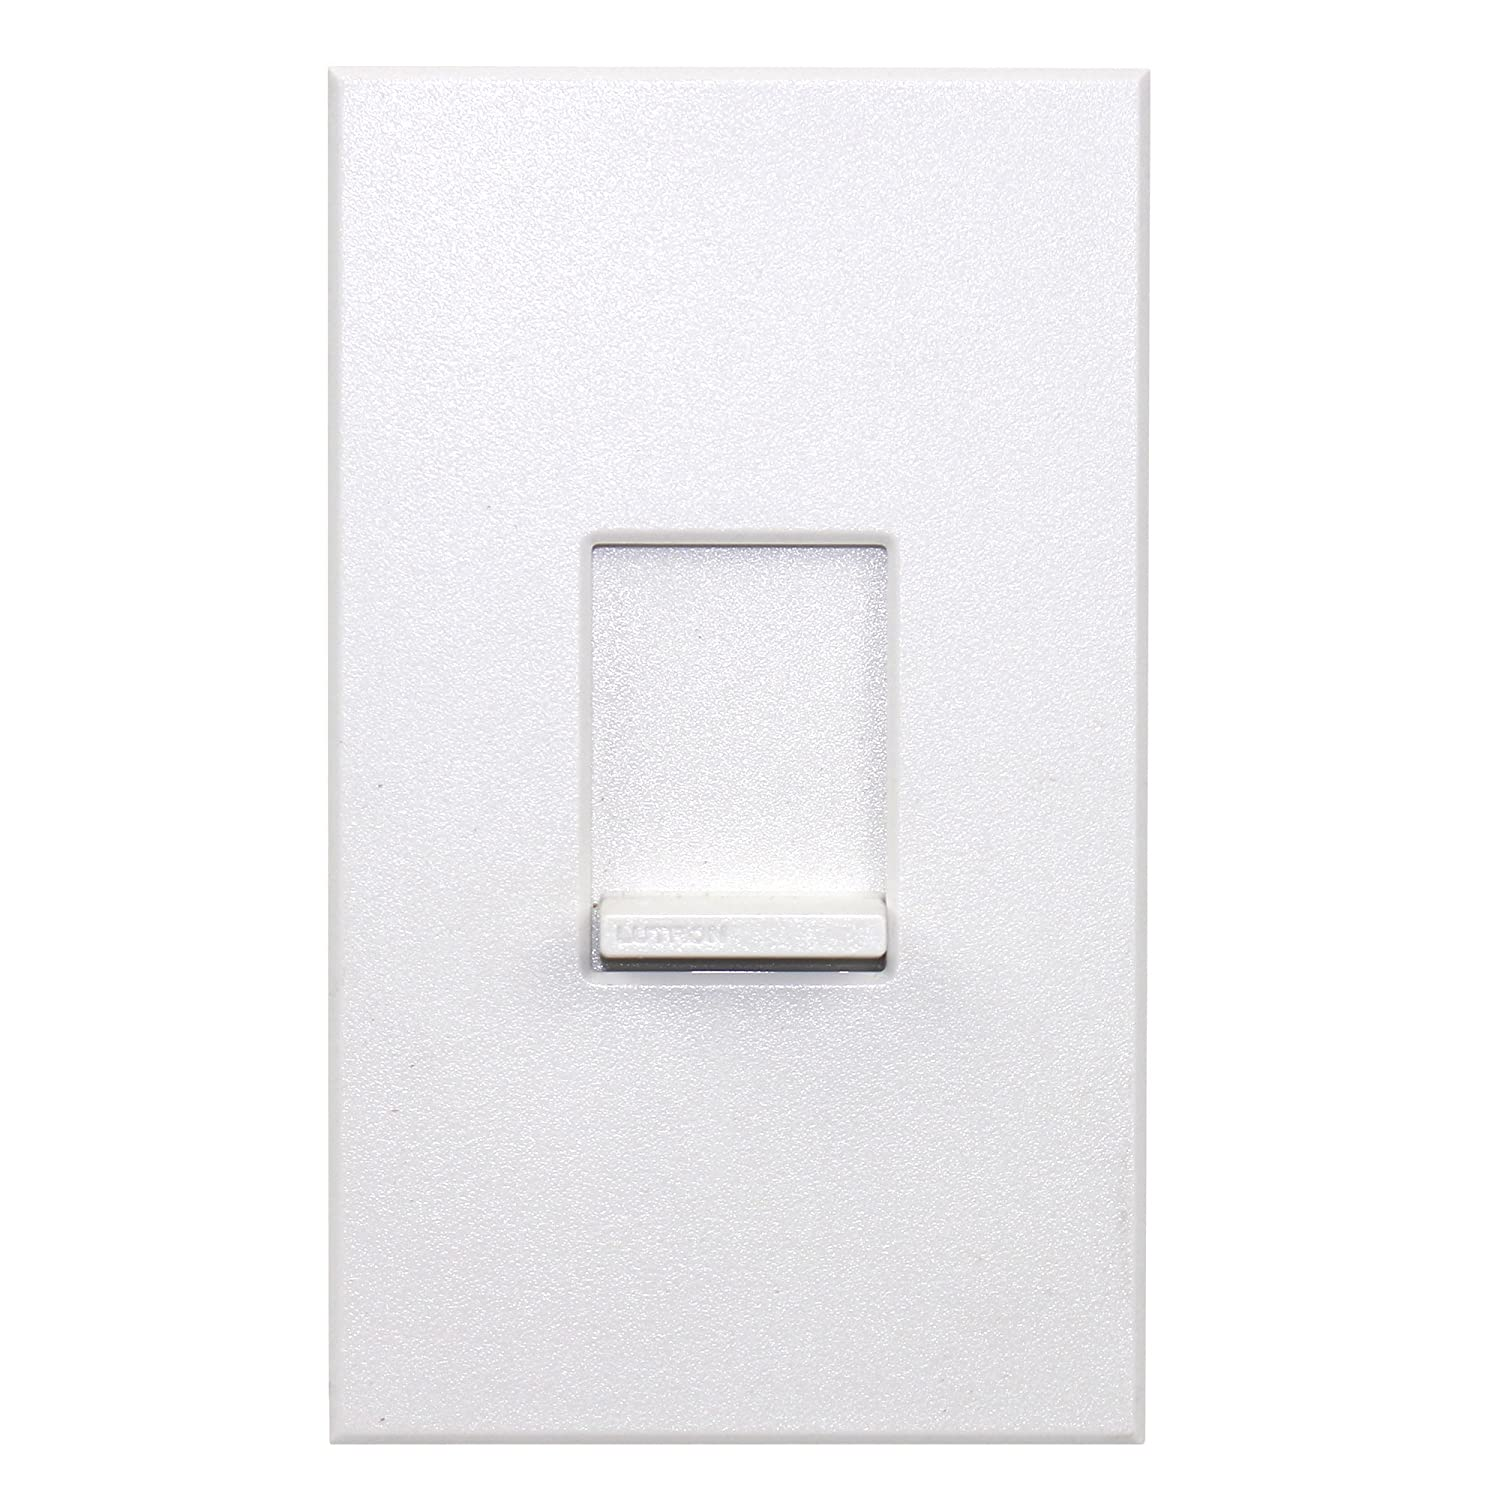 Lutron Dimmers Wiring